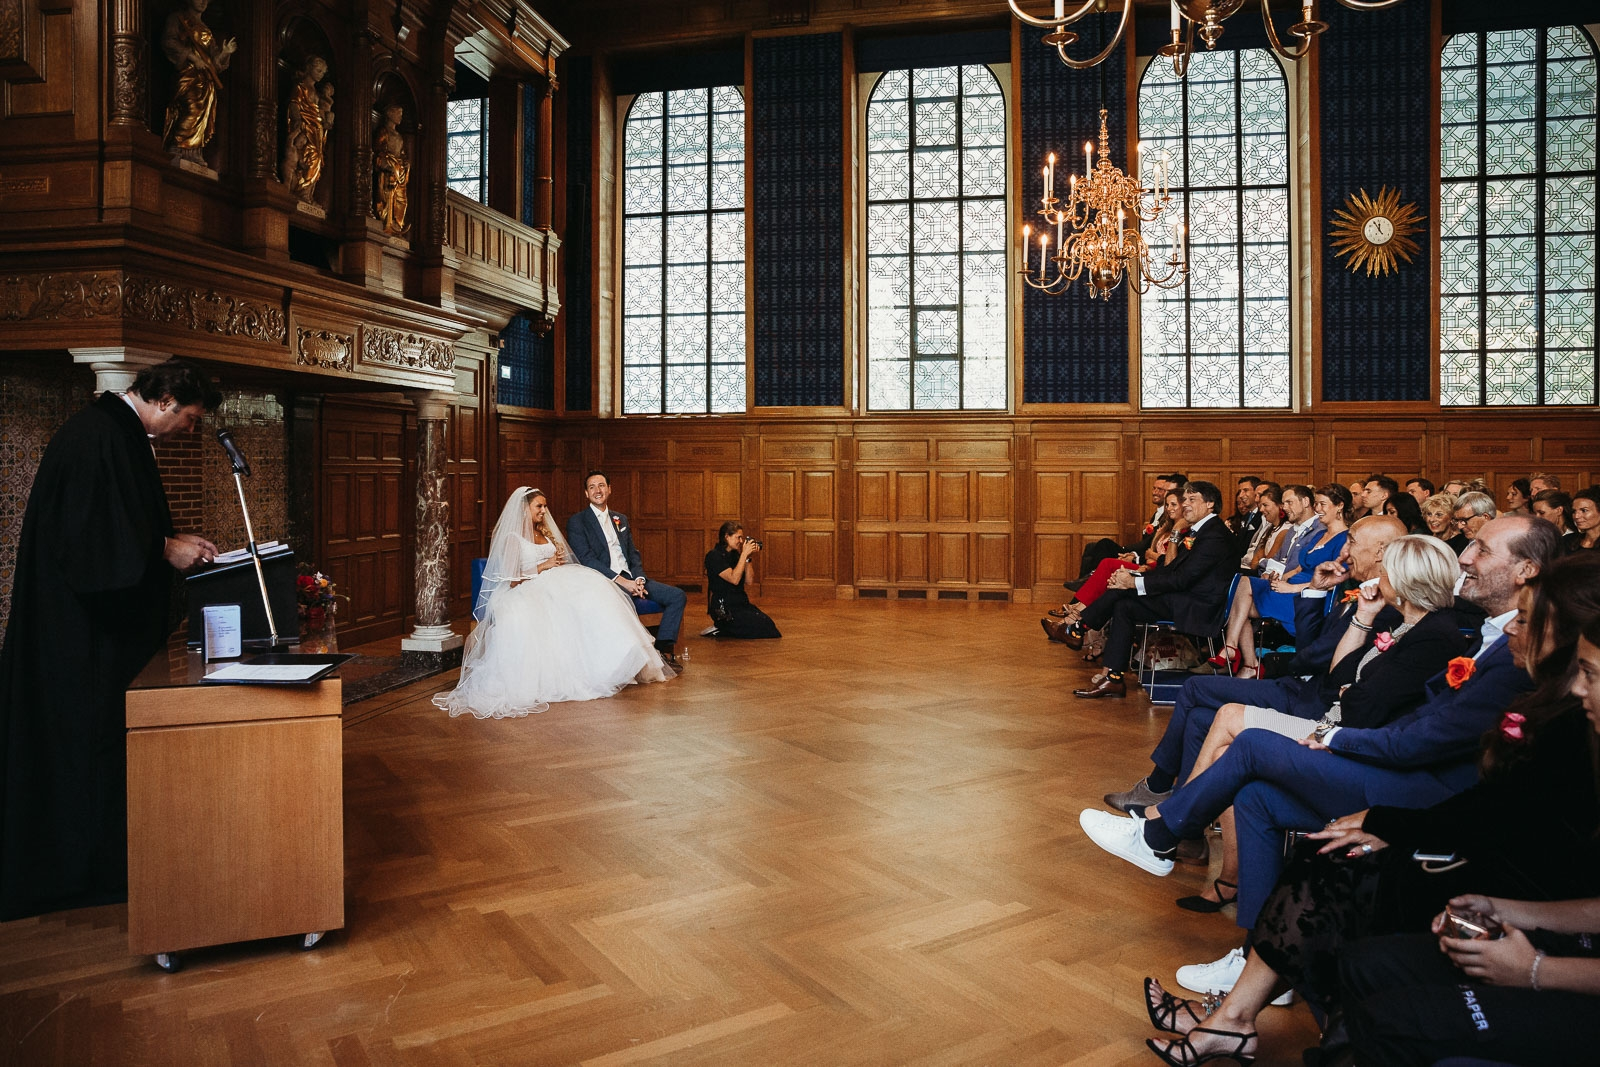 Utrecht photographer working at a church wedding during the ceremony.